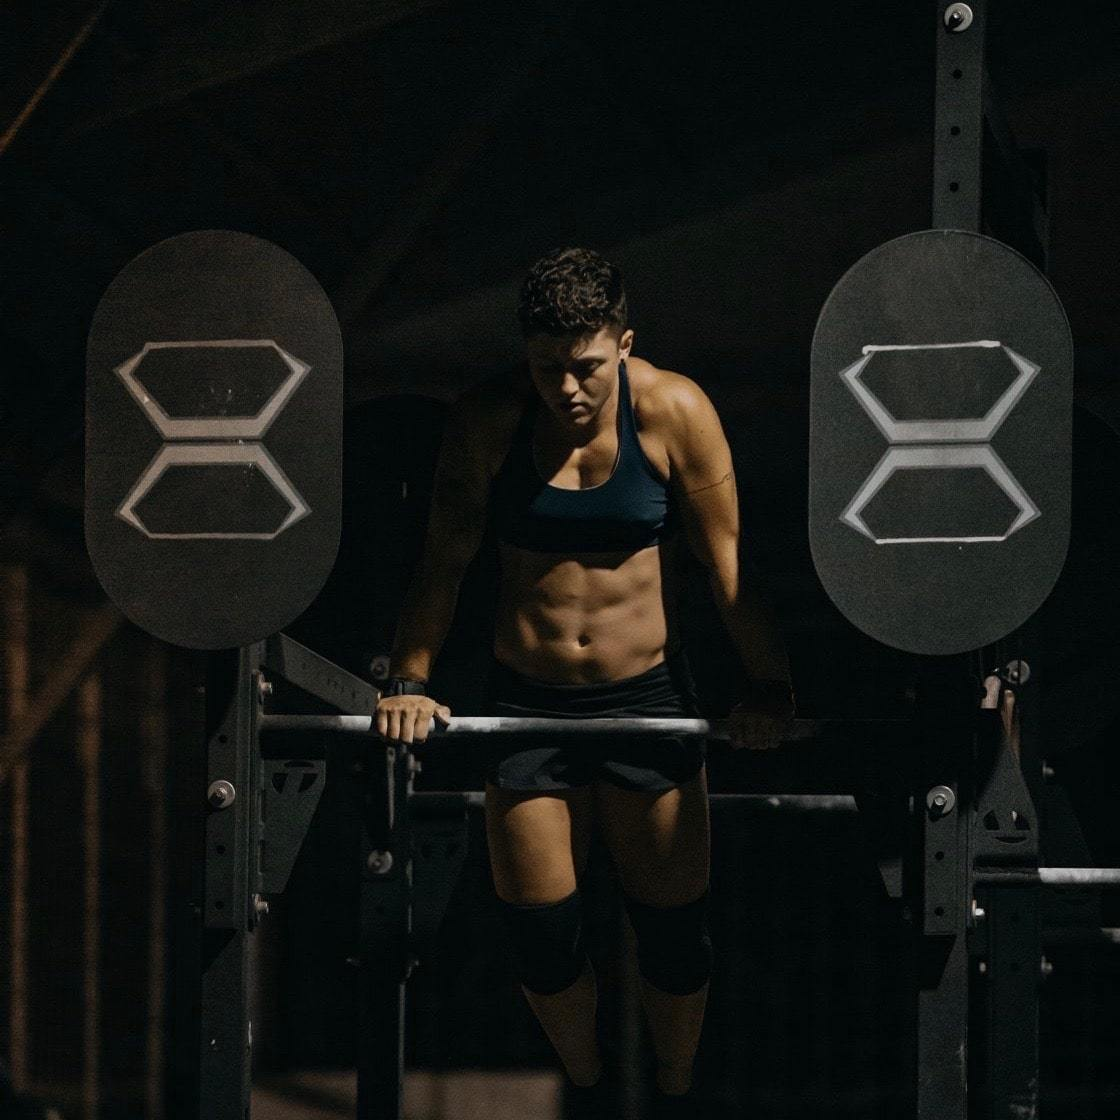 Lu working out in a gym in Bali